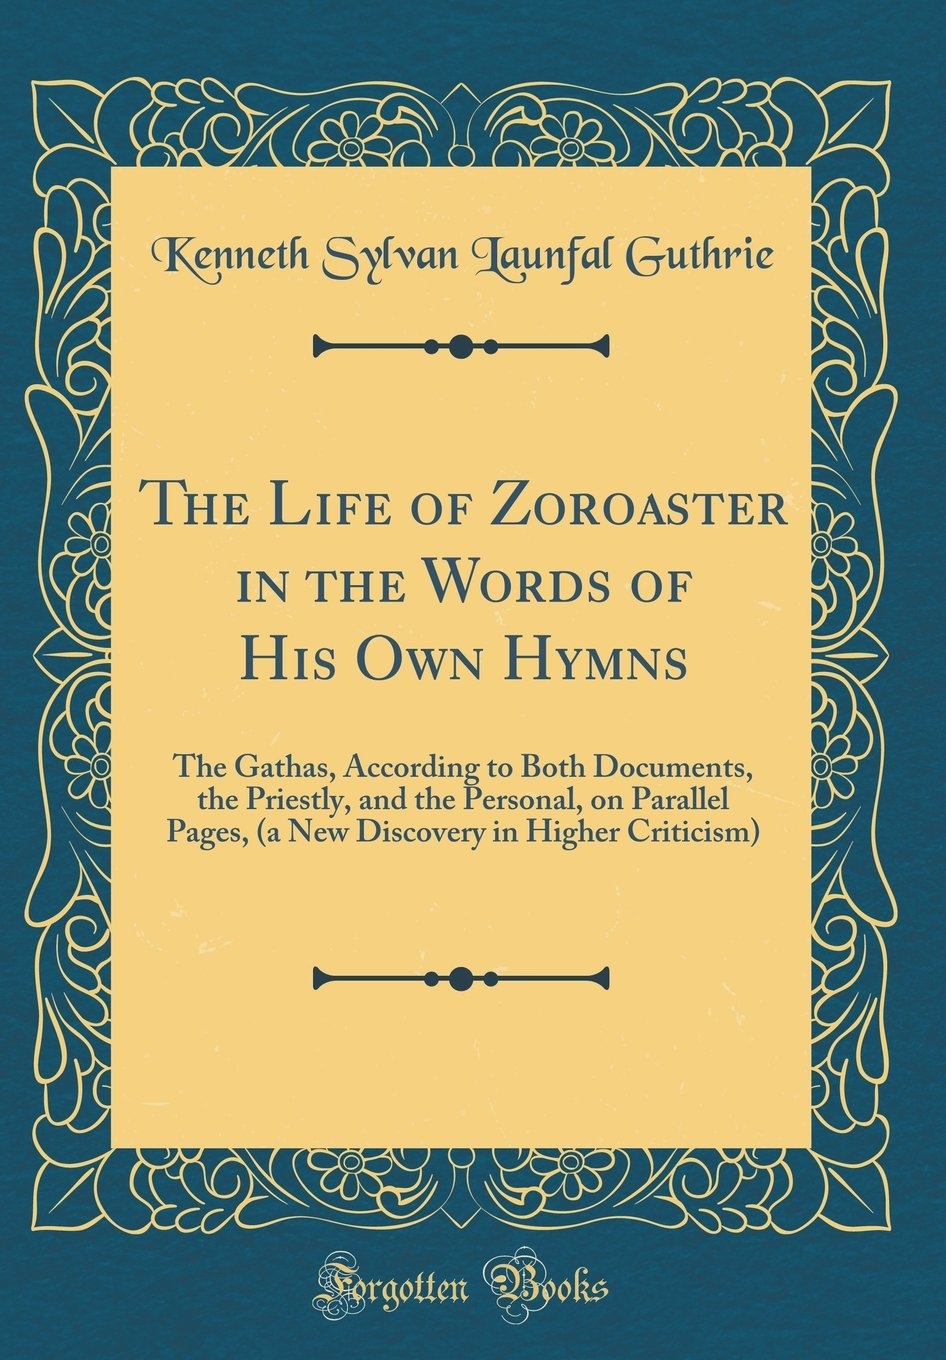 Read Online The Life of Zoroaster in the Words of His Own Hymns: The Gathas, According to Both Documents, the Priestly, and the Personal, on Parallel Pages, (a New Discovery in Higher Criticism) (Classic Reprint) ebook